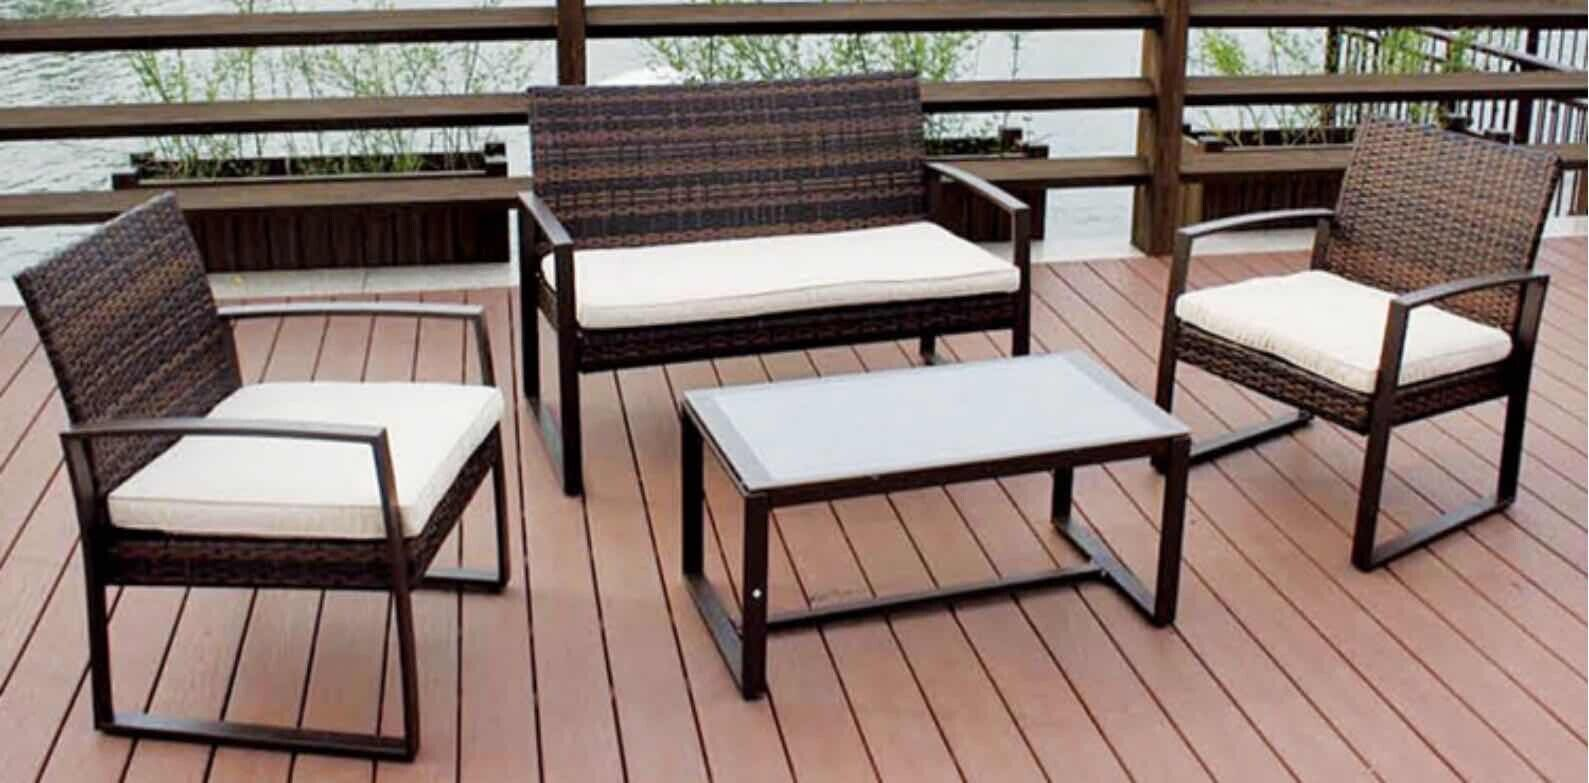 Garden Furniture - New Rattan Garden Furniture Set 4 Piece Chairs Sofa Table Outdoor Patio